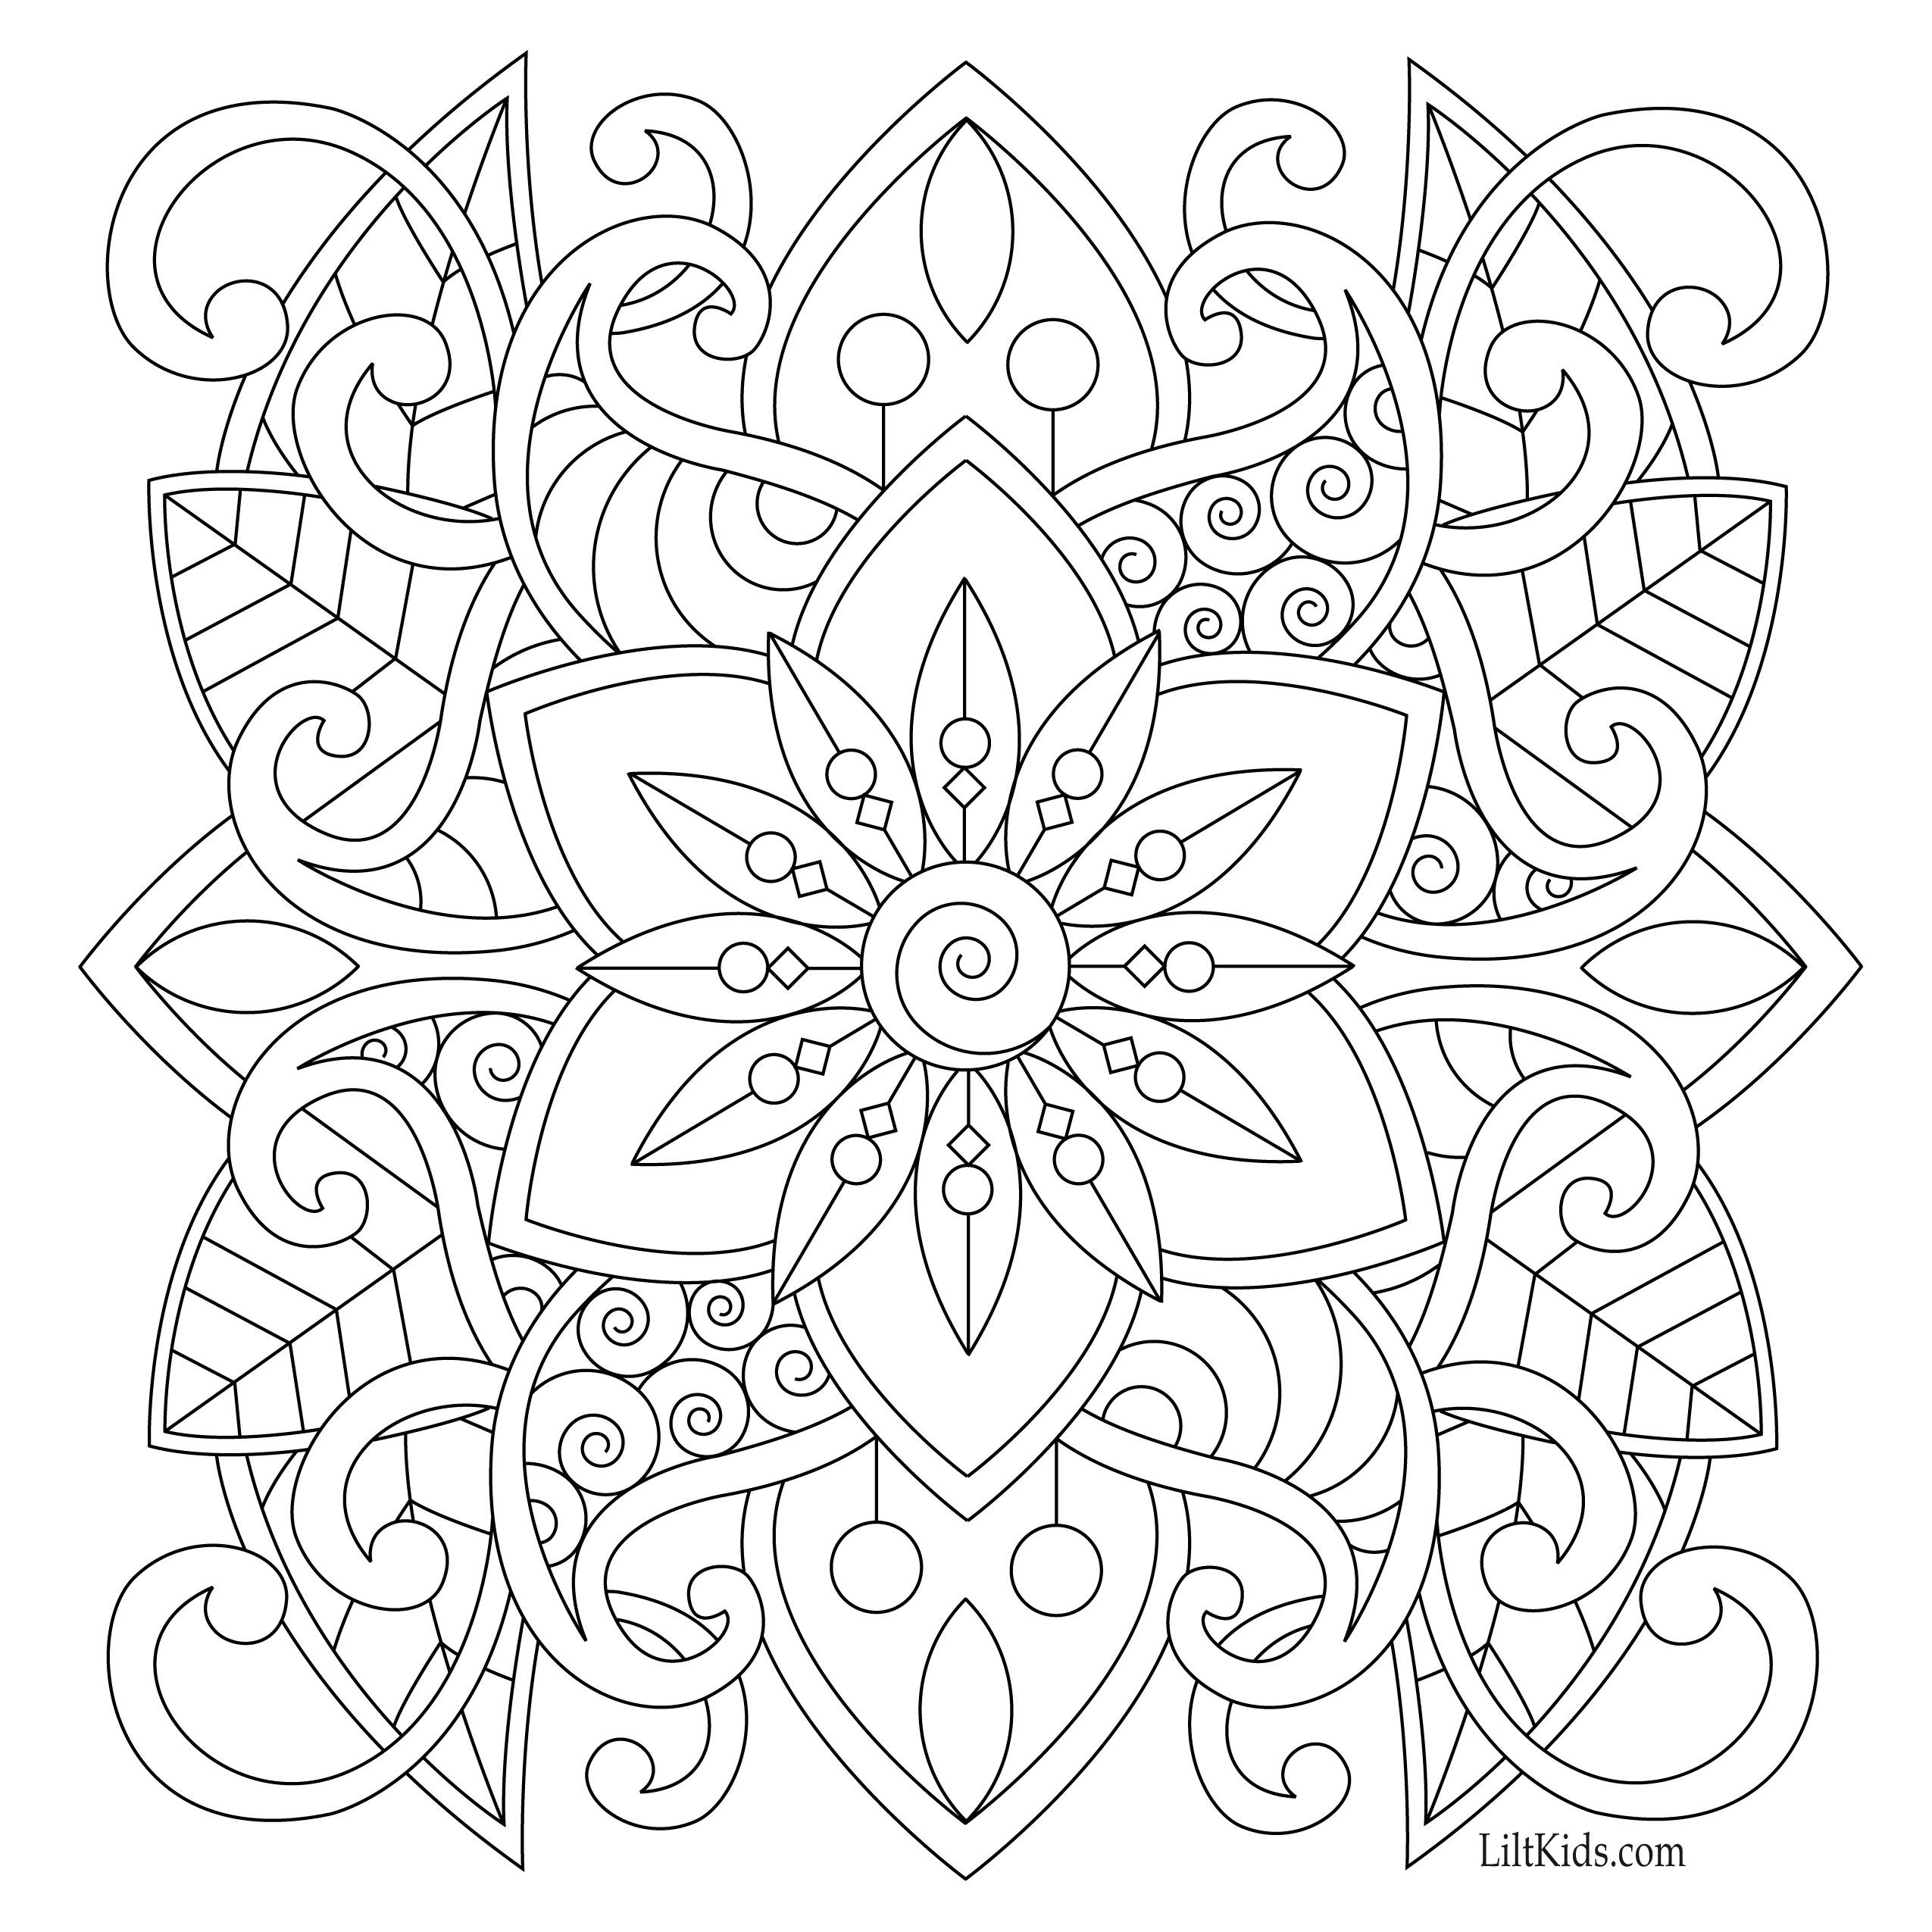 Free easy mandala for beginners adult coloring book image